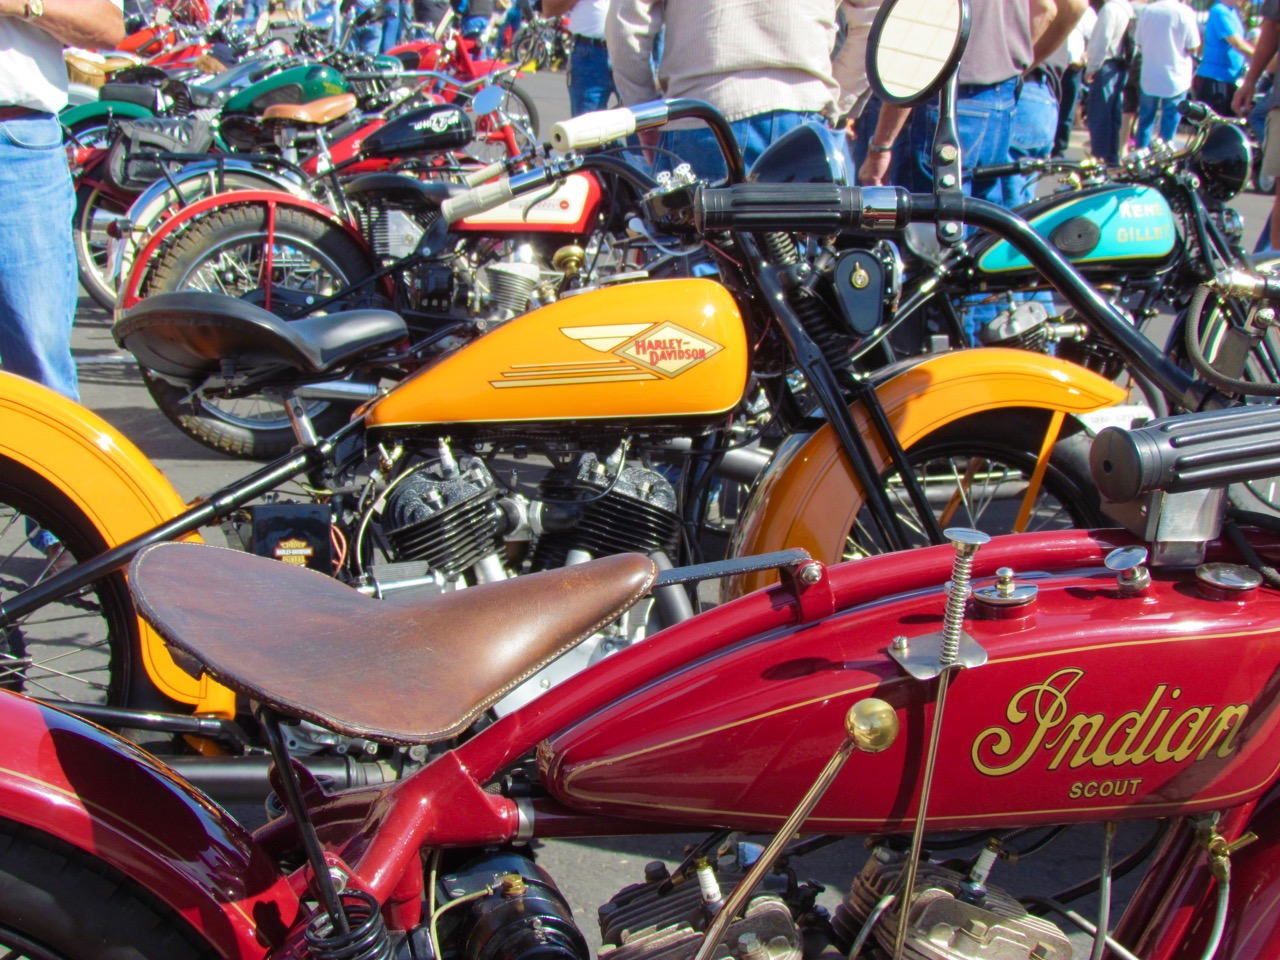 Just some of the dozens of vintage and antique motorcycles at the Arizona show | Larry Edsall photo